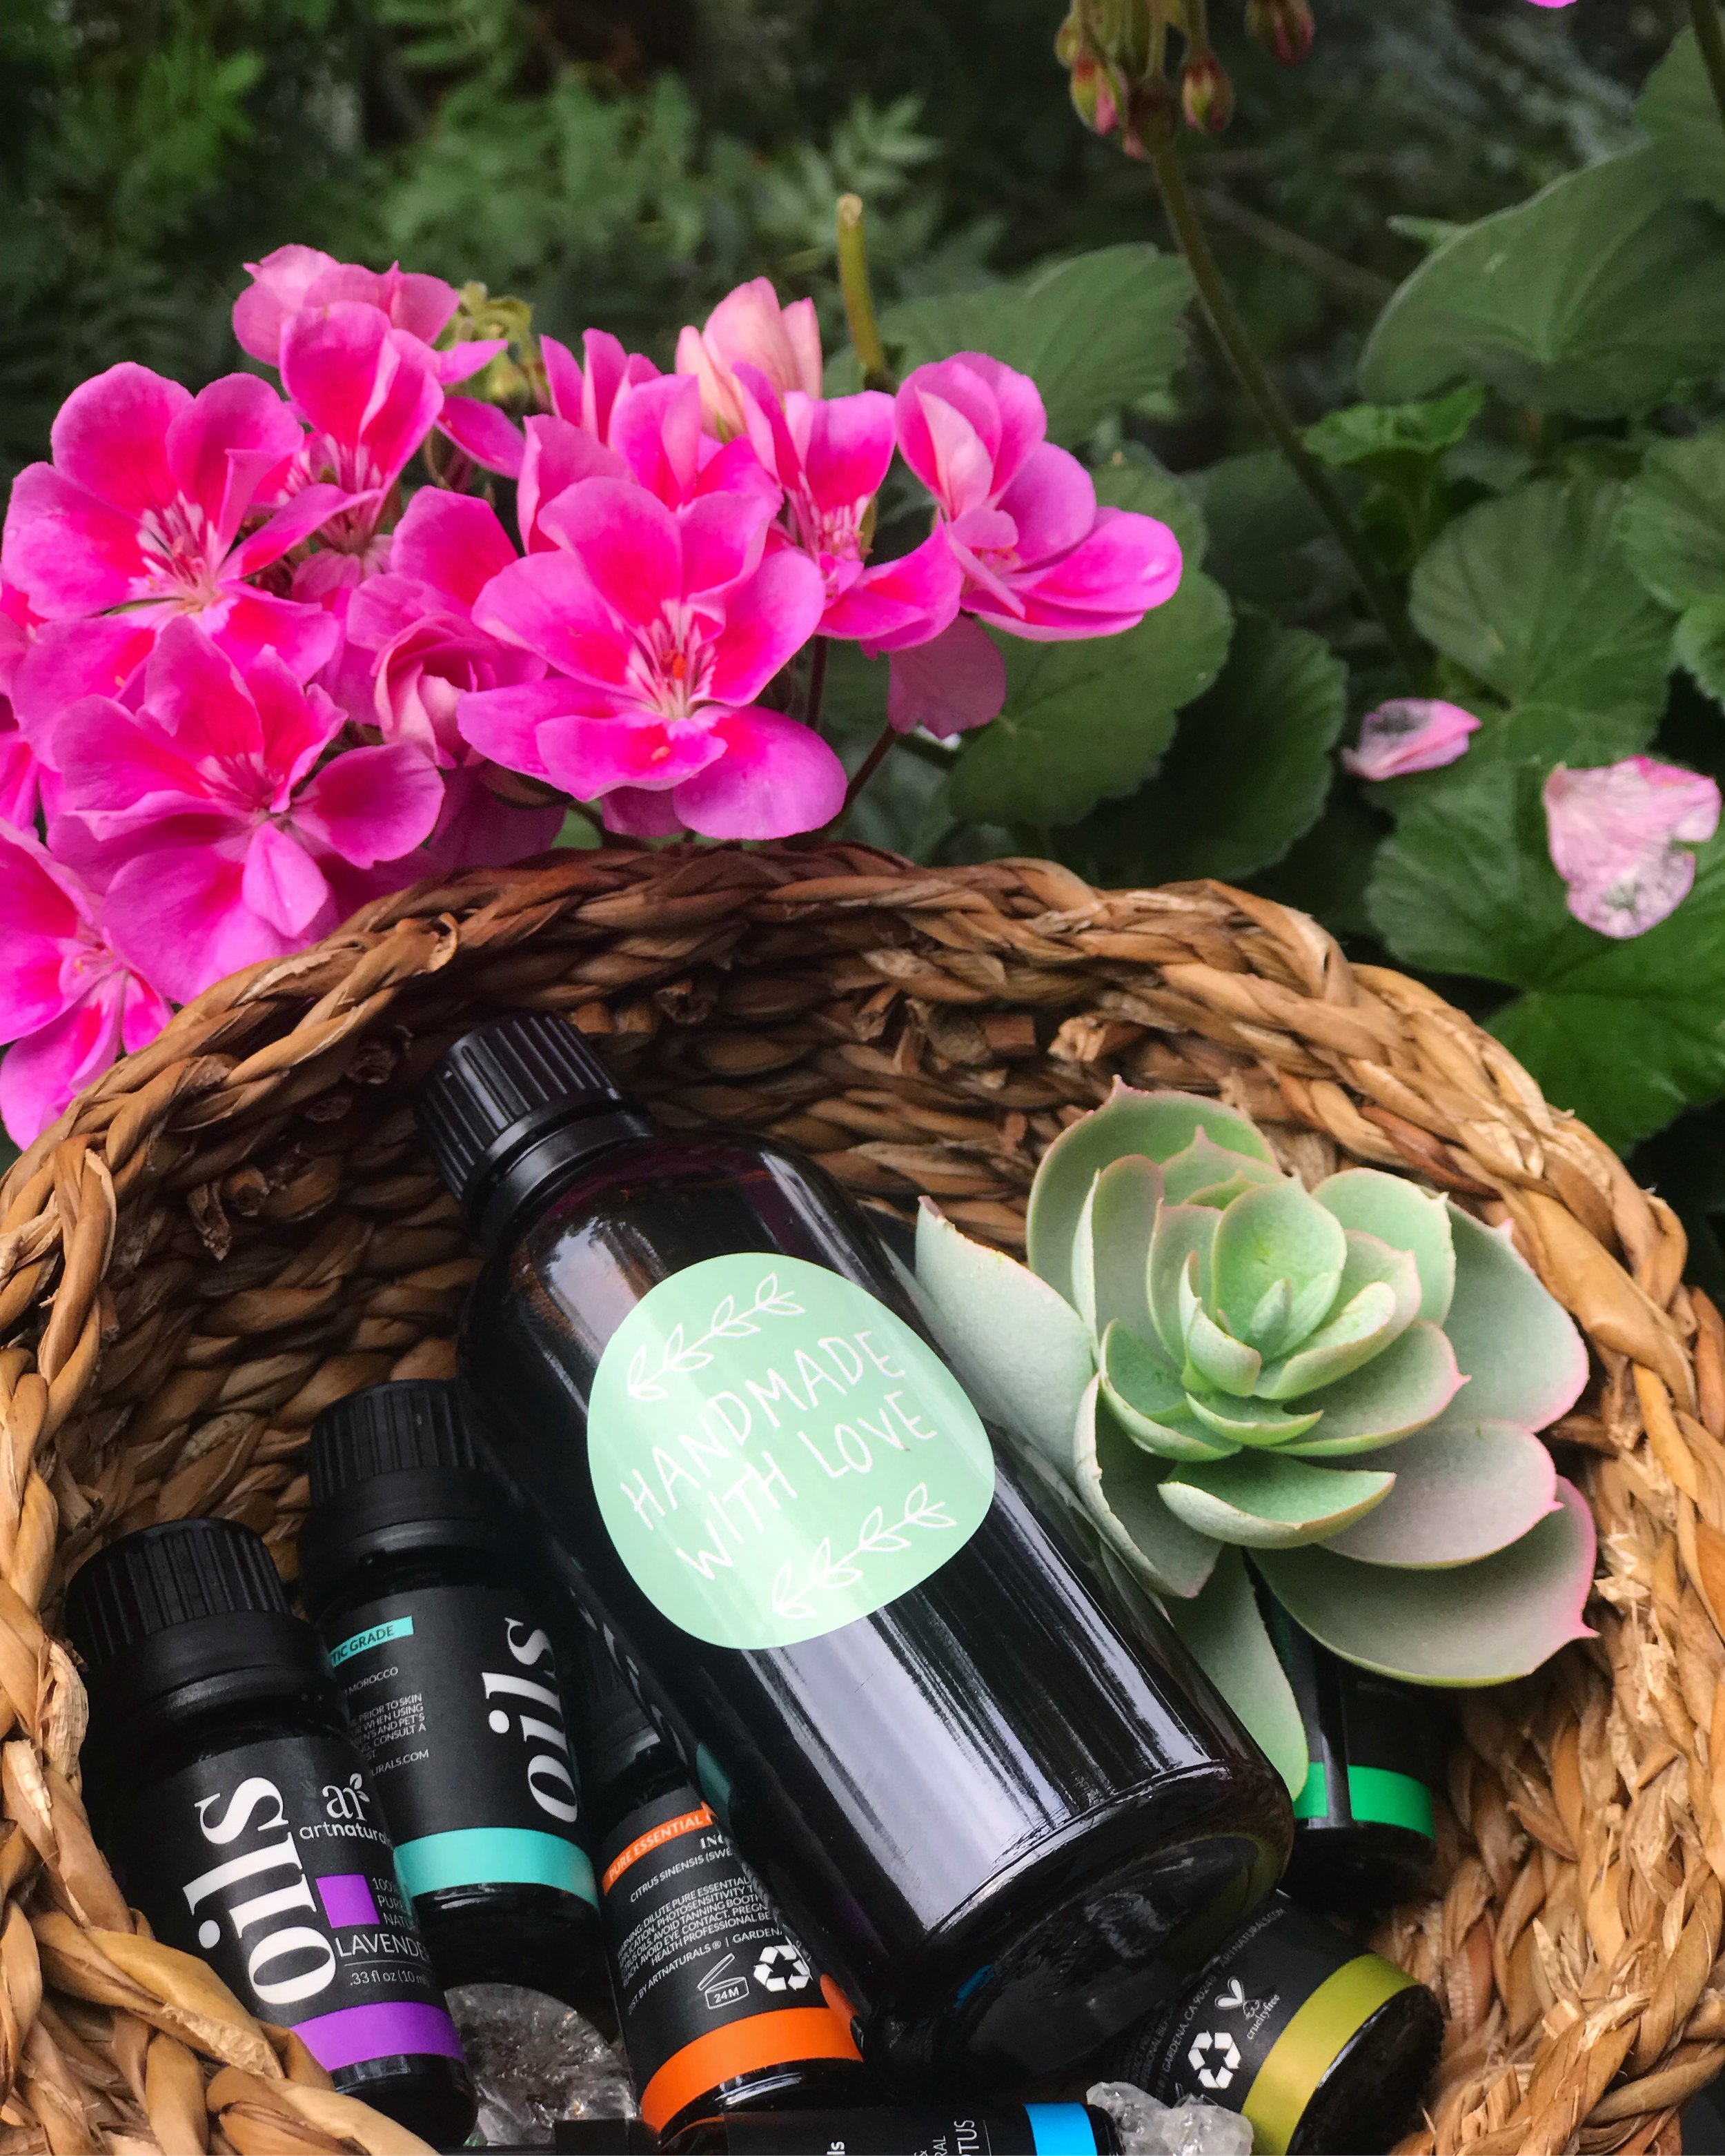 I absolutely love making my own beauty products with natural ingredients and my essential oils.